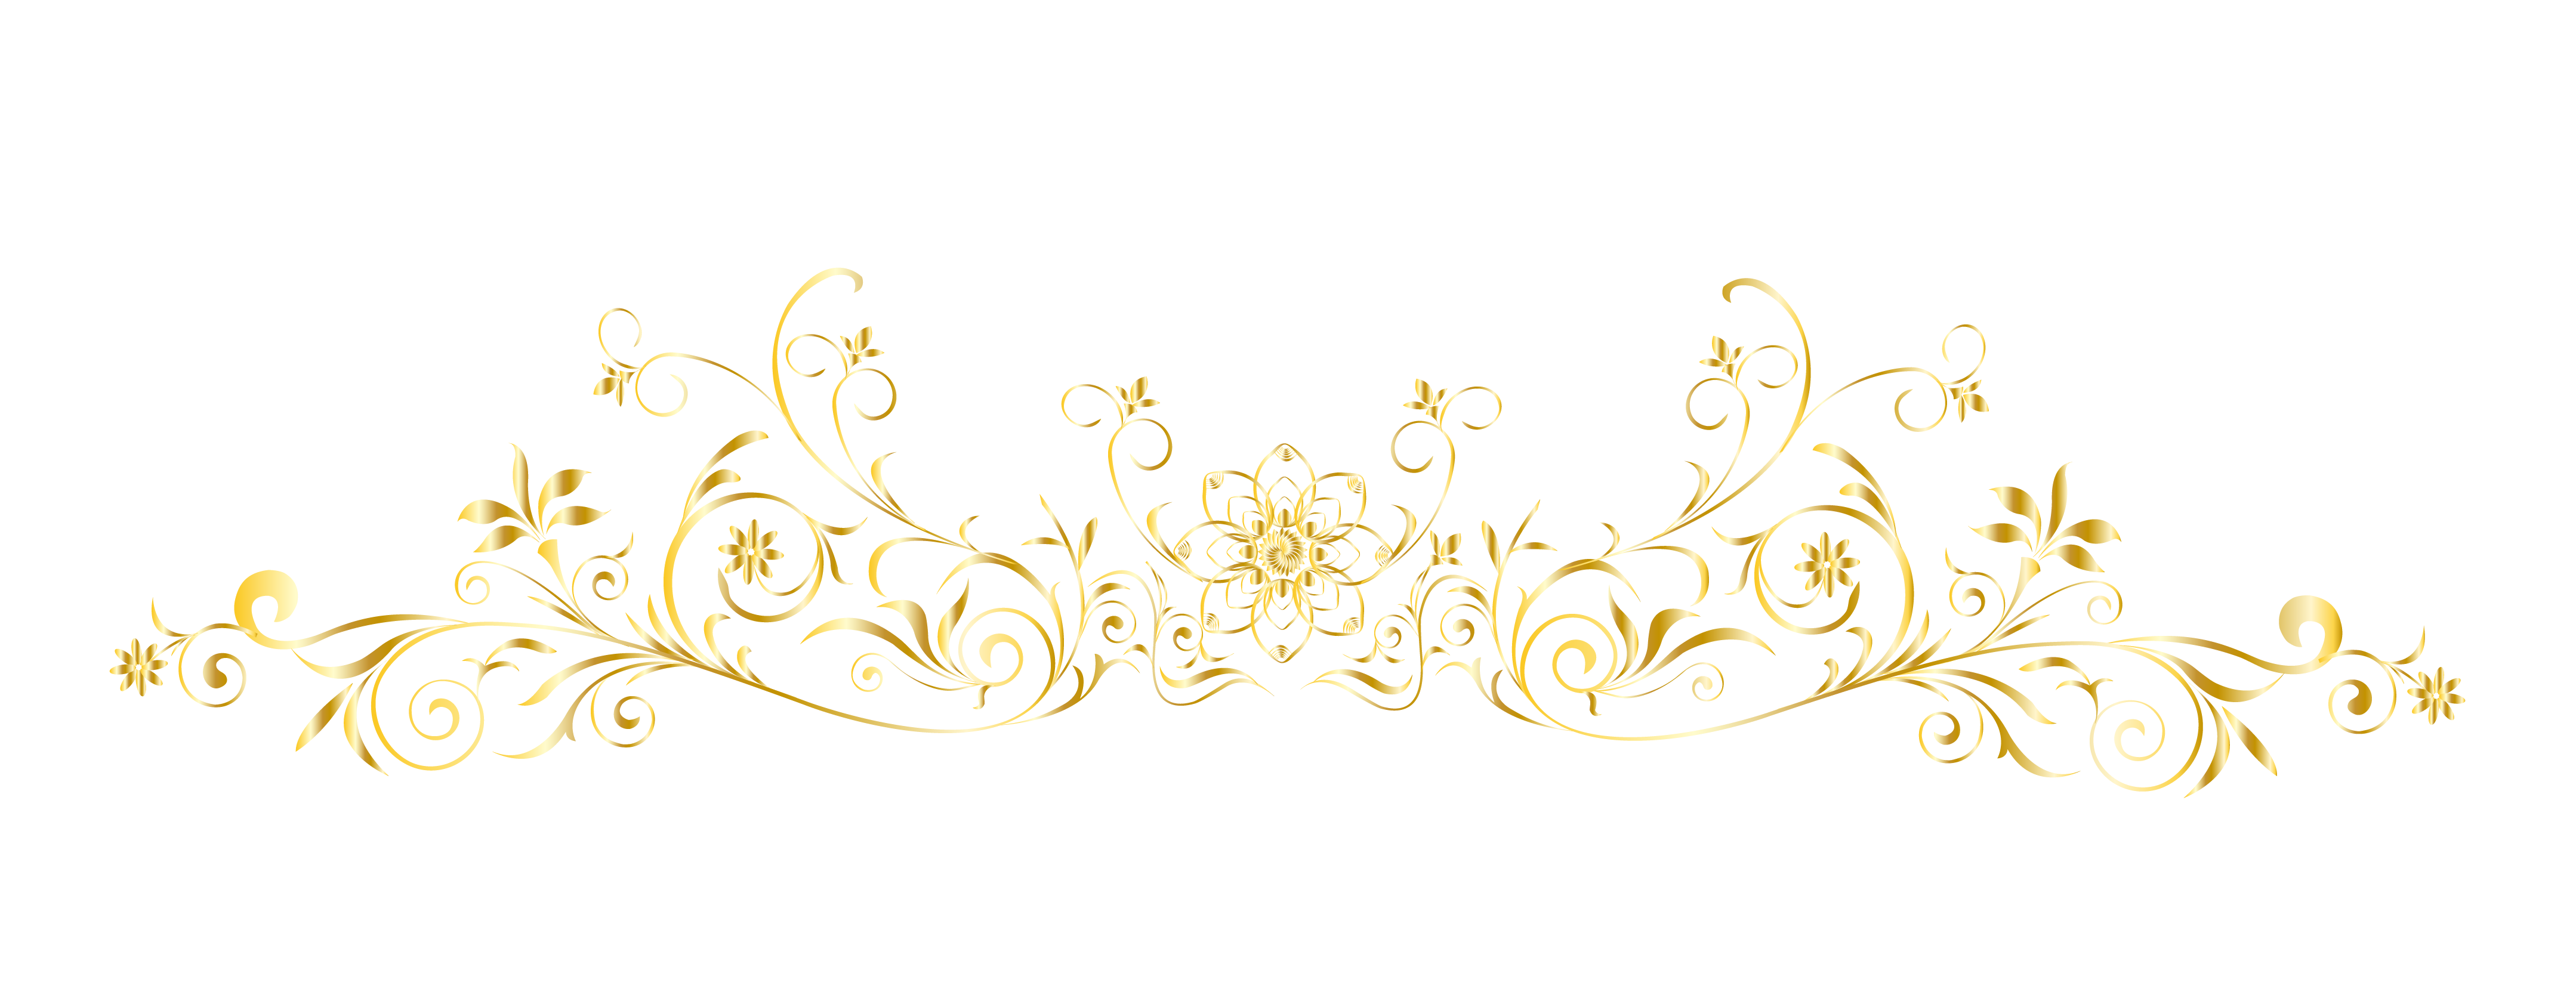 clip royalty free stock 1 vector gold #88601749